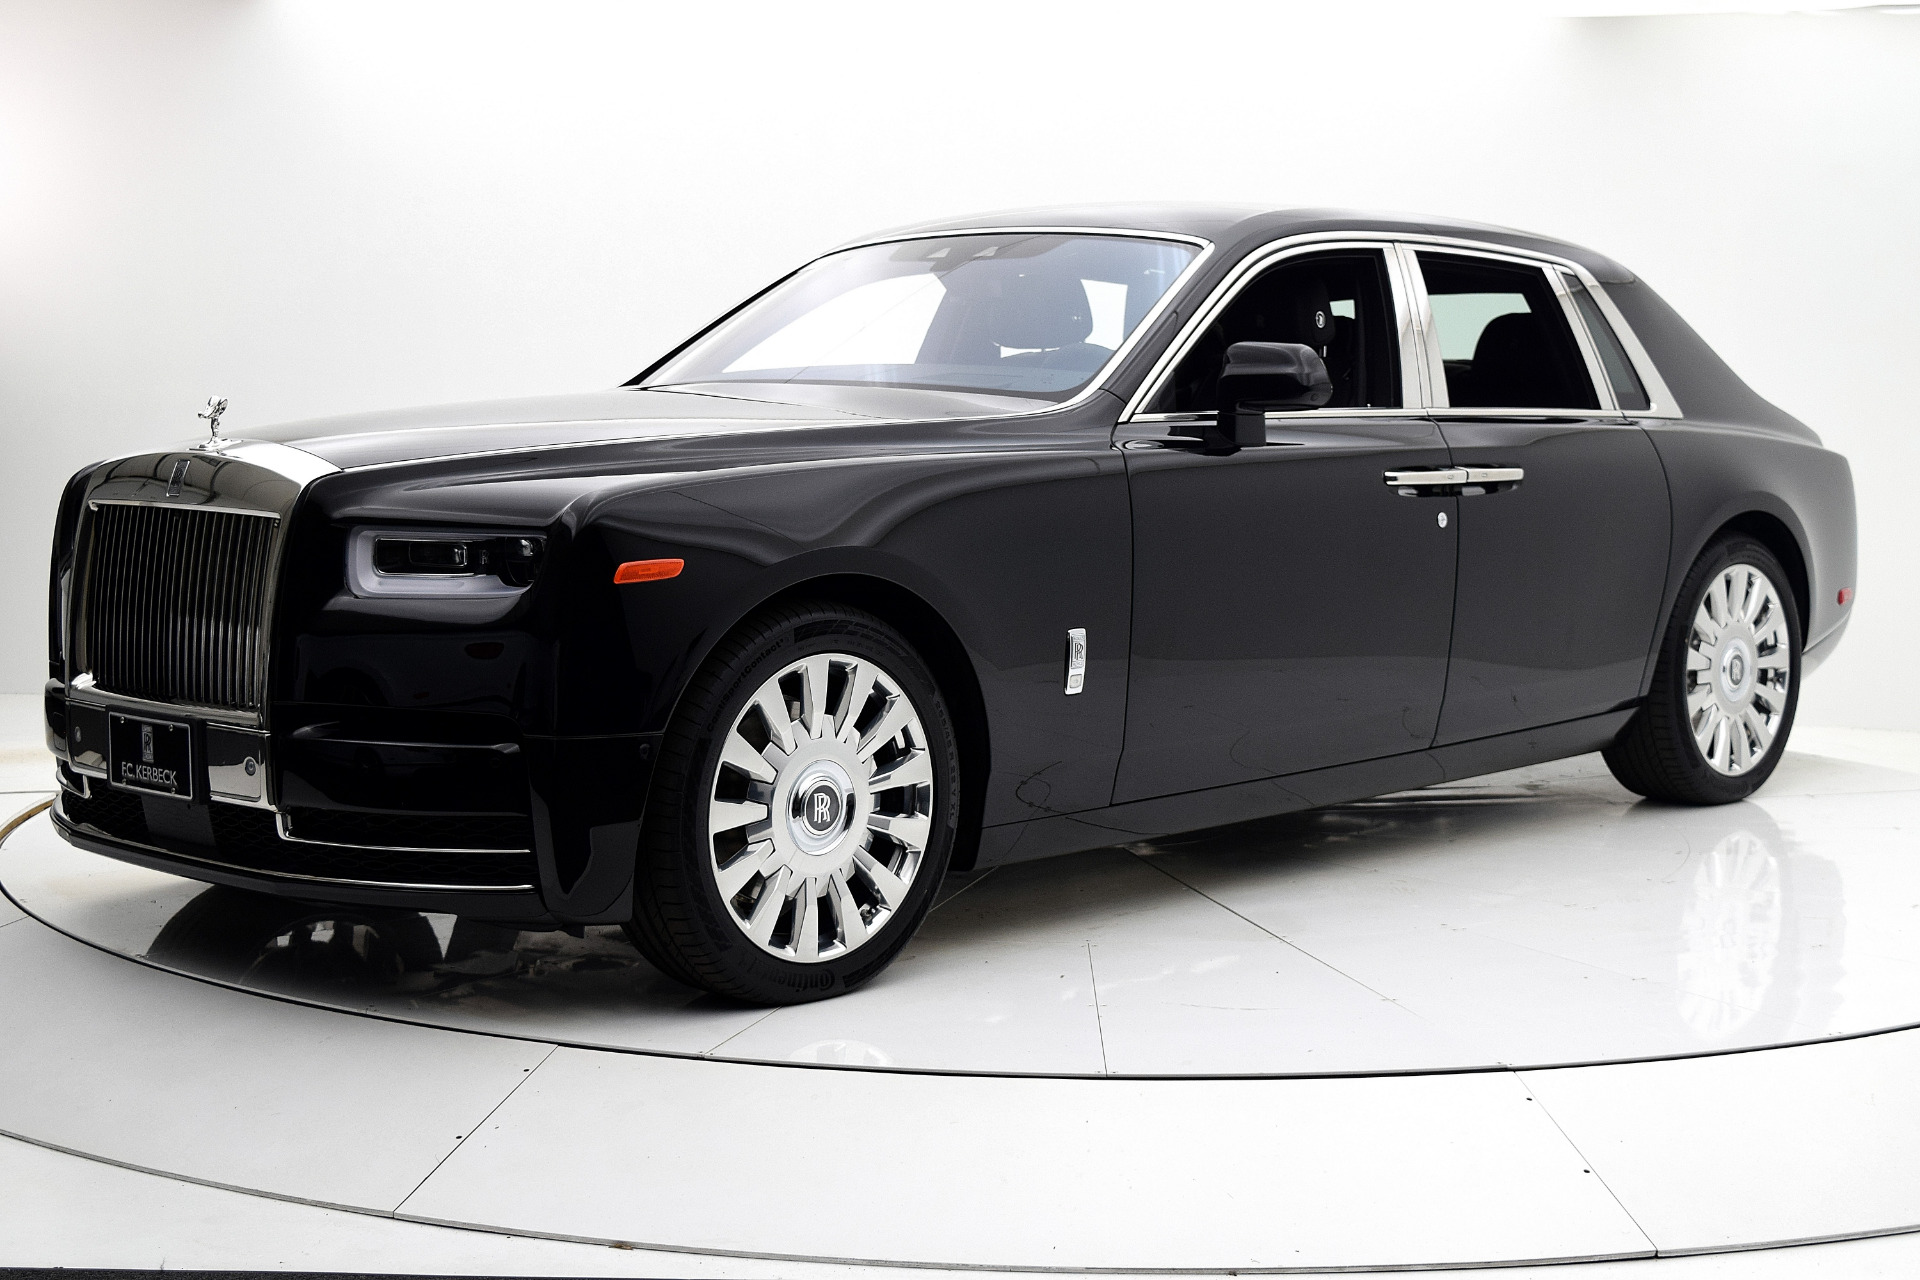 Used 2019 Rolls-Royce Phantom for sale Sold at F.C. Kerbeck Aston Martin in Palmyra NJ 08065 2